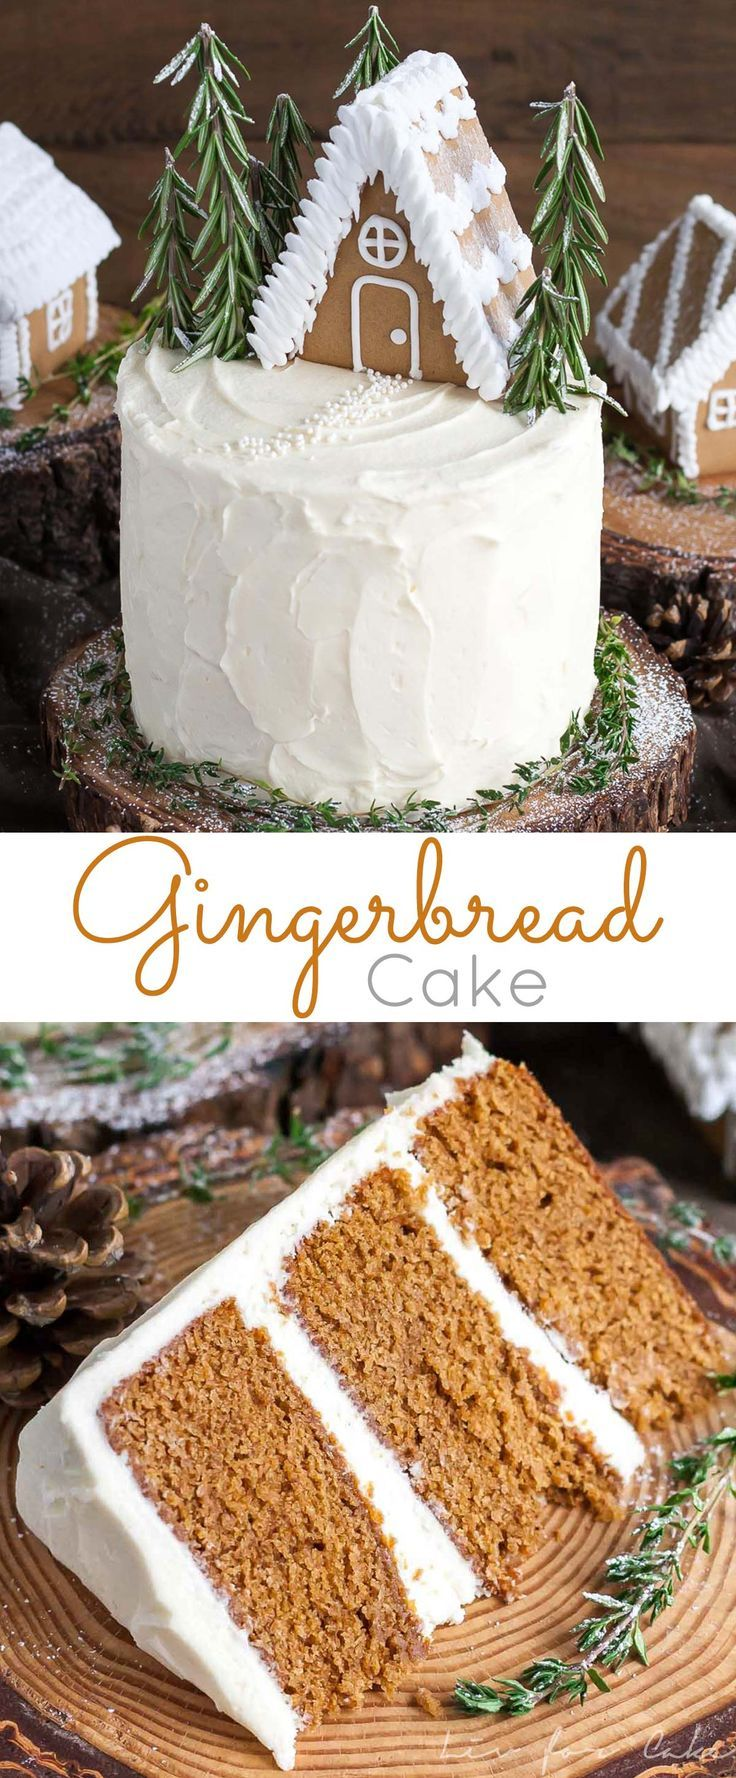 This Gingerbread Cake is perfect for the holidays! A moist and delicious ginger cake with a tangy cream cheese frosting. | http://livforcake.com